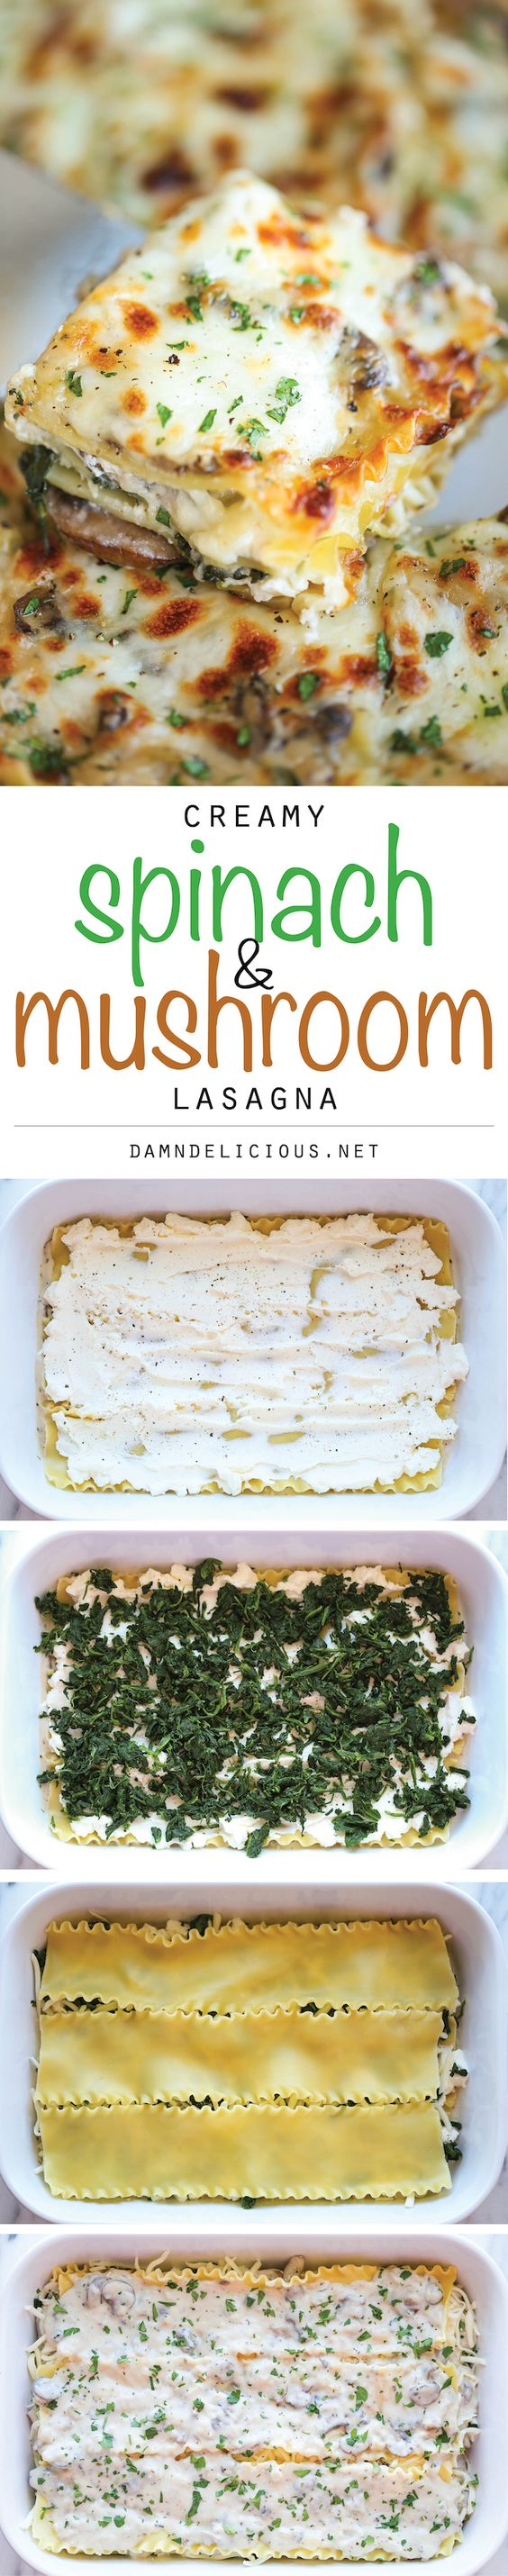 Creamy Spinach and Mushroom Lasagna - This is sure to become a family favorite. Best of all, it's freezer-friendly and can also be made ahead of time! (Italian pasta recipe, meatless recipes)